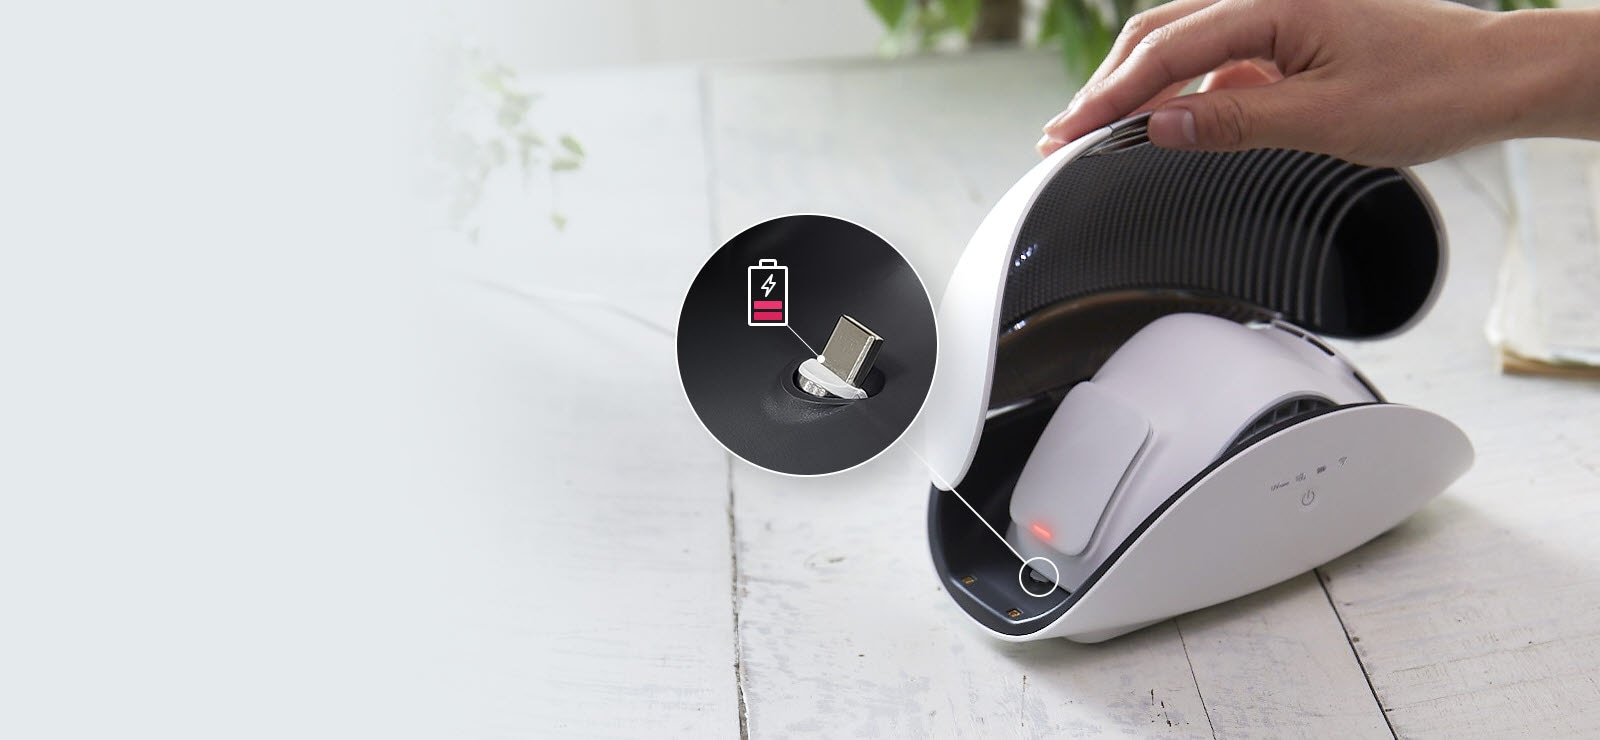 A hand holds open the lid of the purifier case to show the LG PuriCare Wearable Air Purifier sitting inside. There is a red light on the side of the wearable air purifier inside and inset image in a circle with a line to the side of the mask shows a magnified view of the place to recharge the mask. There is also a battery icon that is red and almost empty indicating it's time to plug it in.